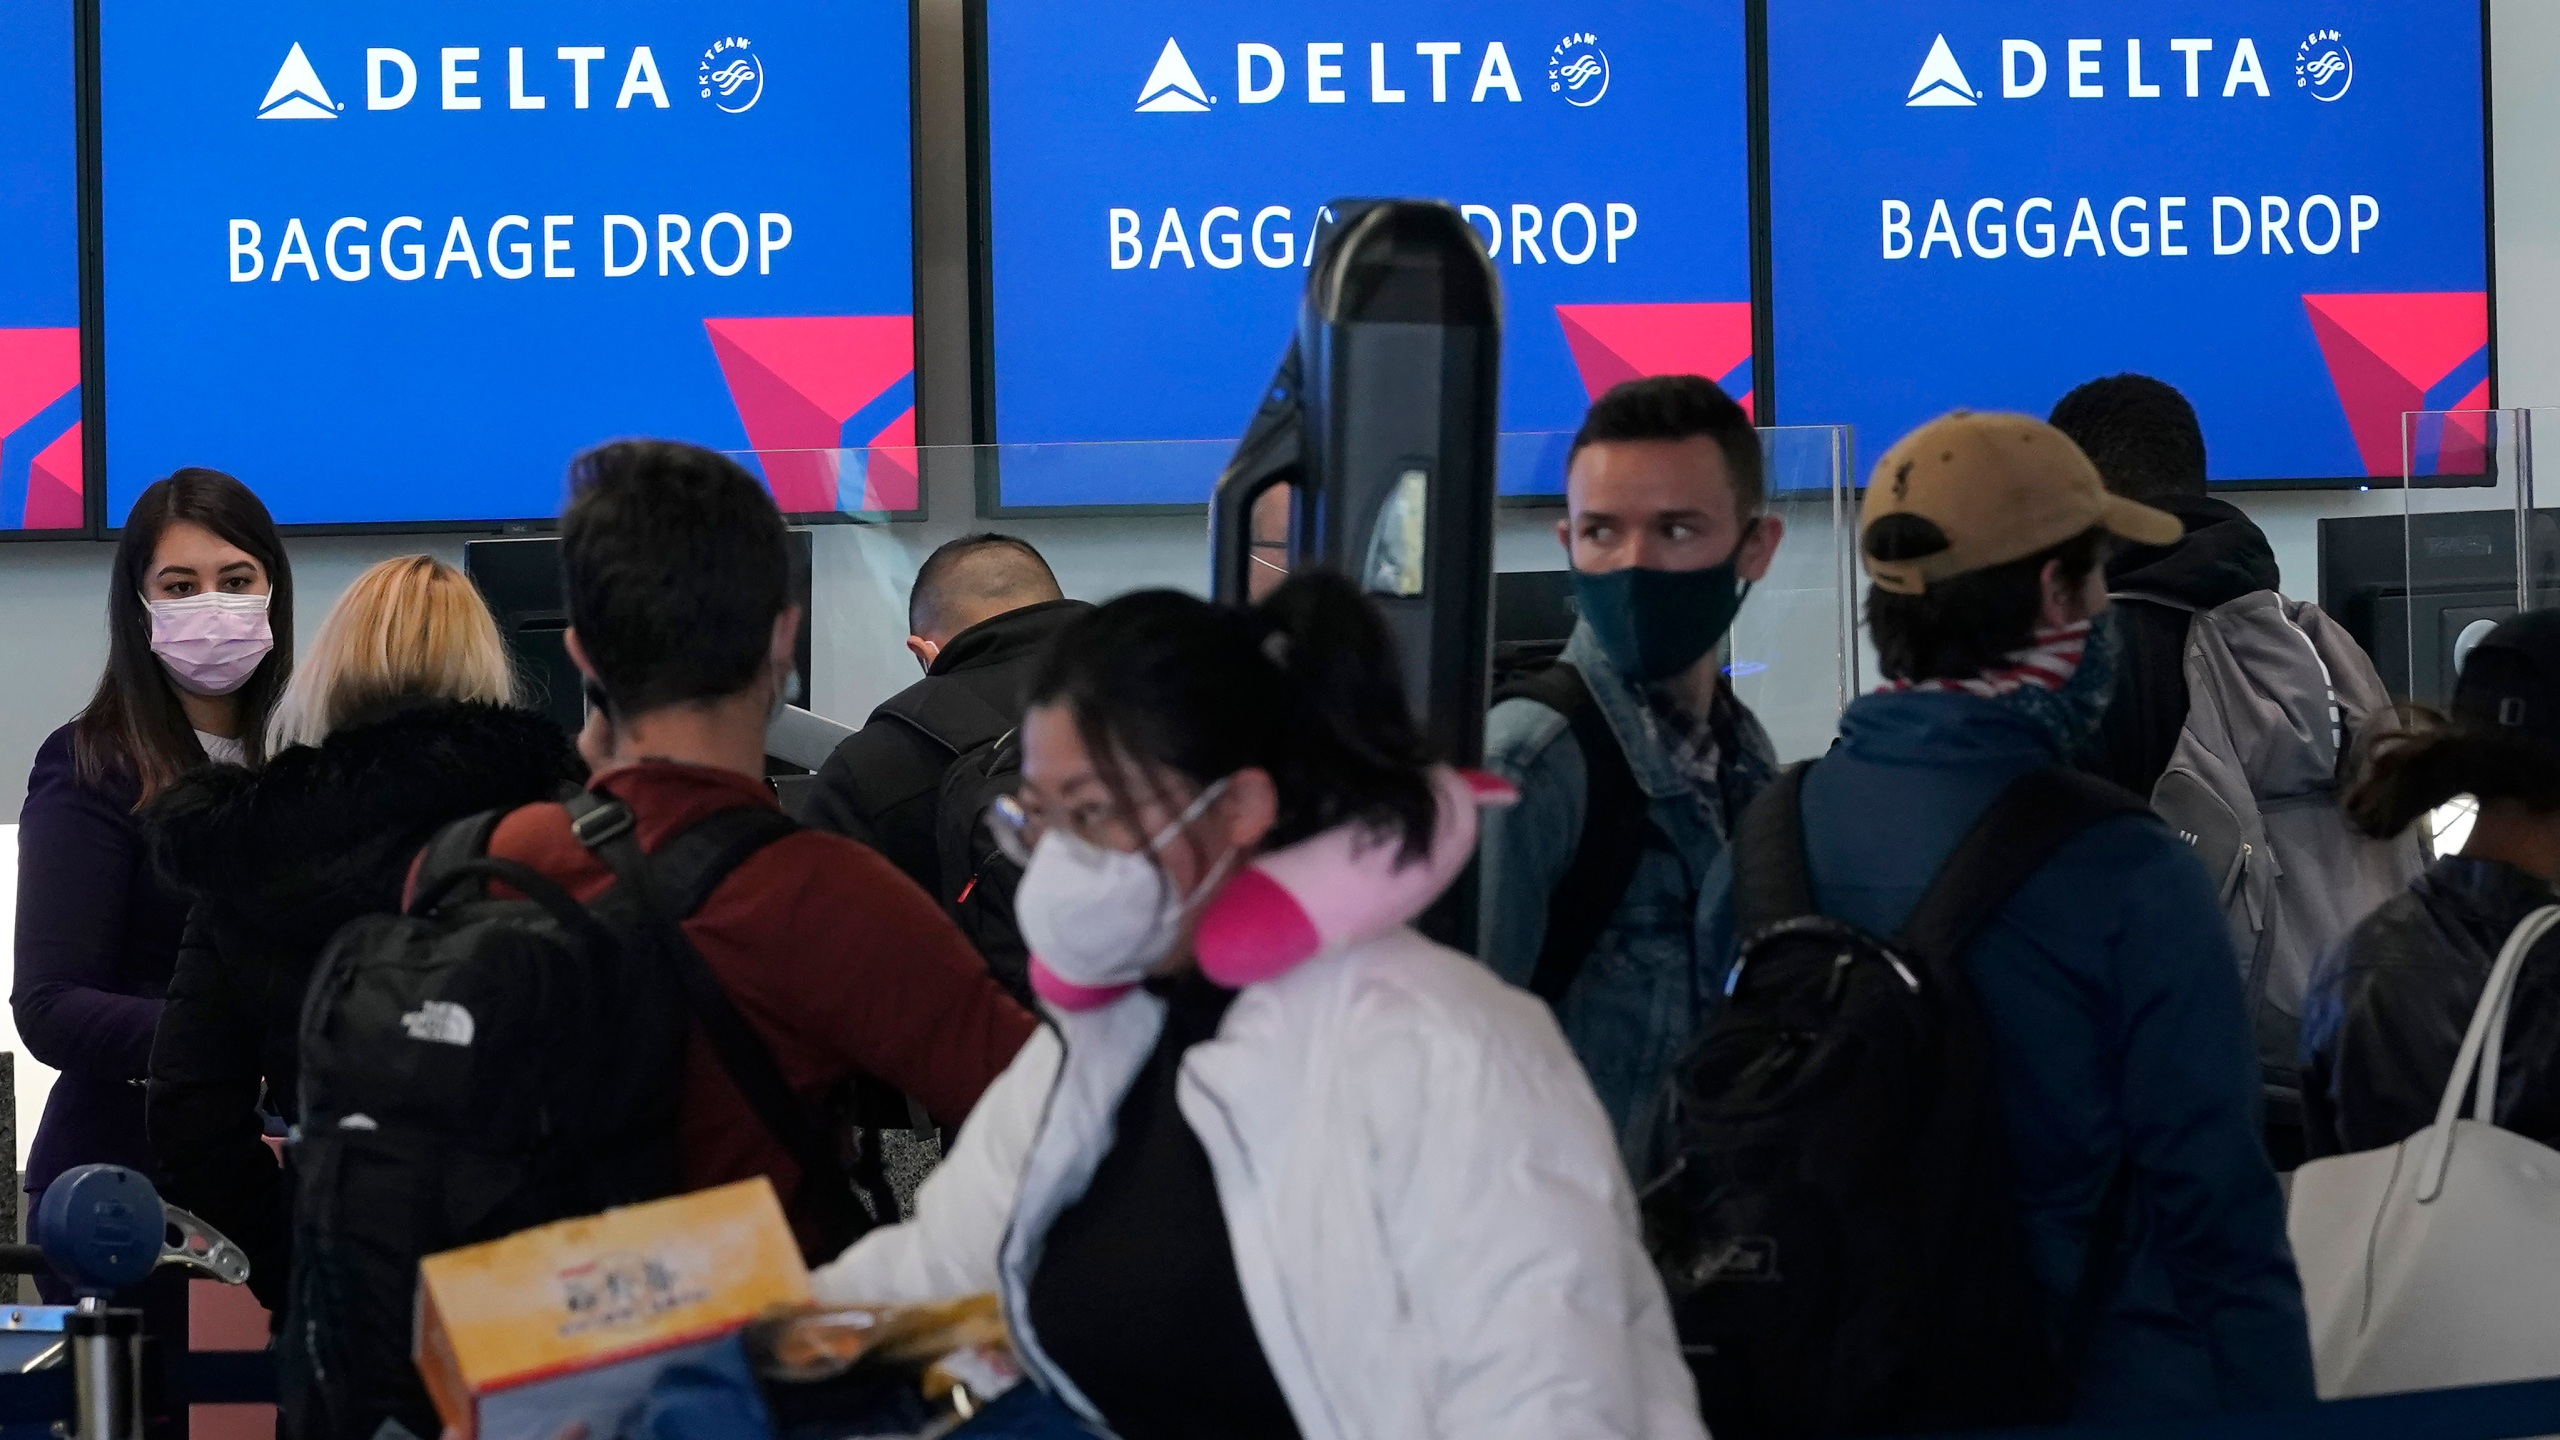 People wait in line at a Delta Air Lines gate at San Francisco International Airport during the coronavirus pandemic in San Francisco, Tuesday, Dec. 22, 2020. (AP Photo/Jeff Chiu)